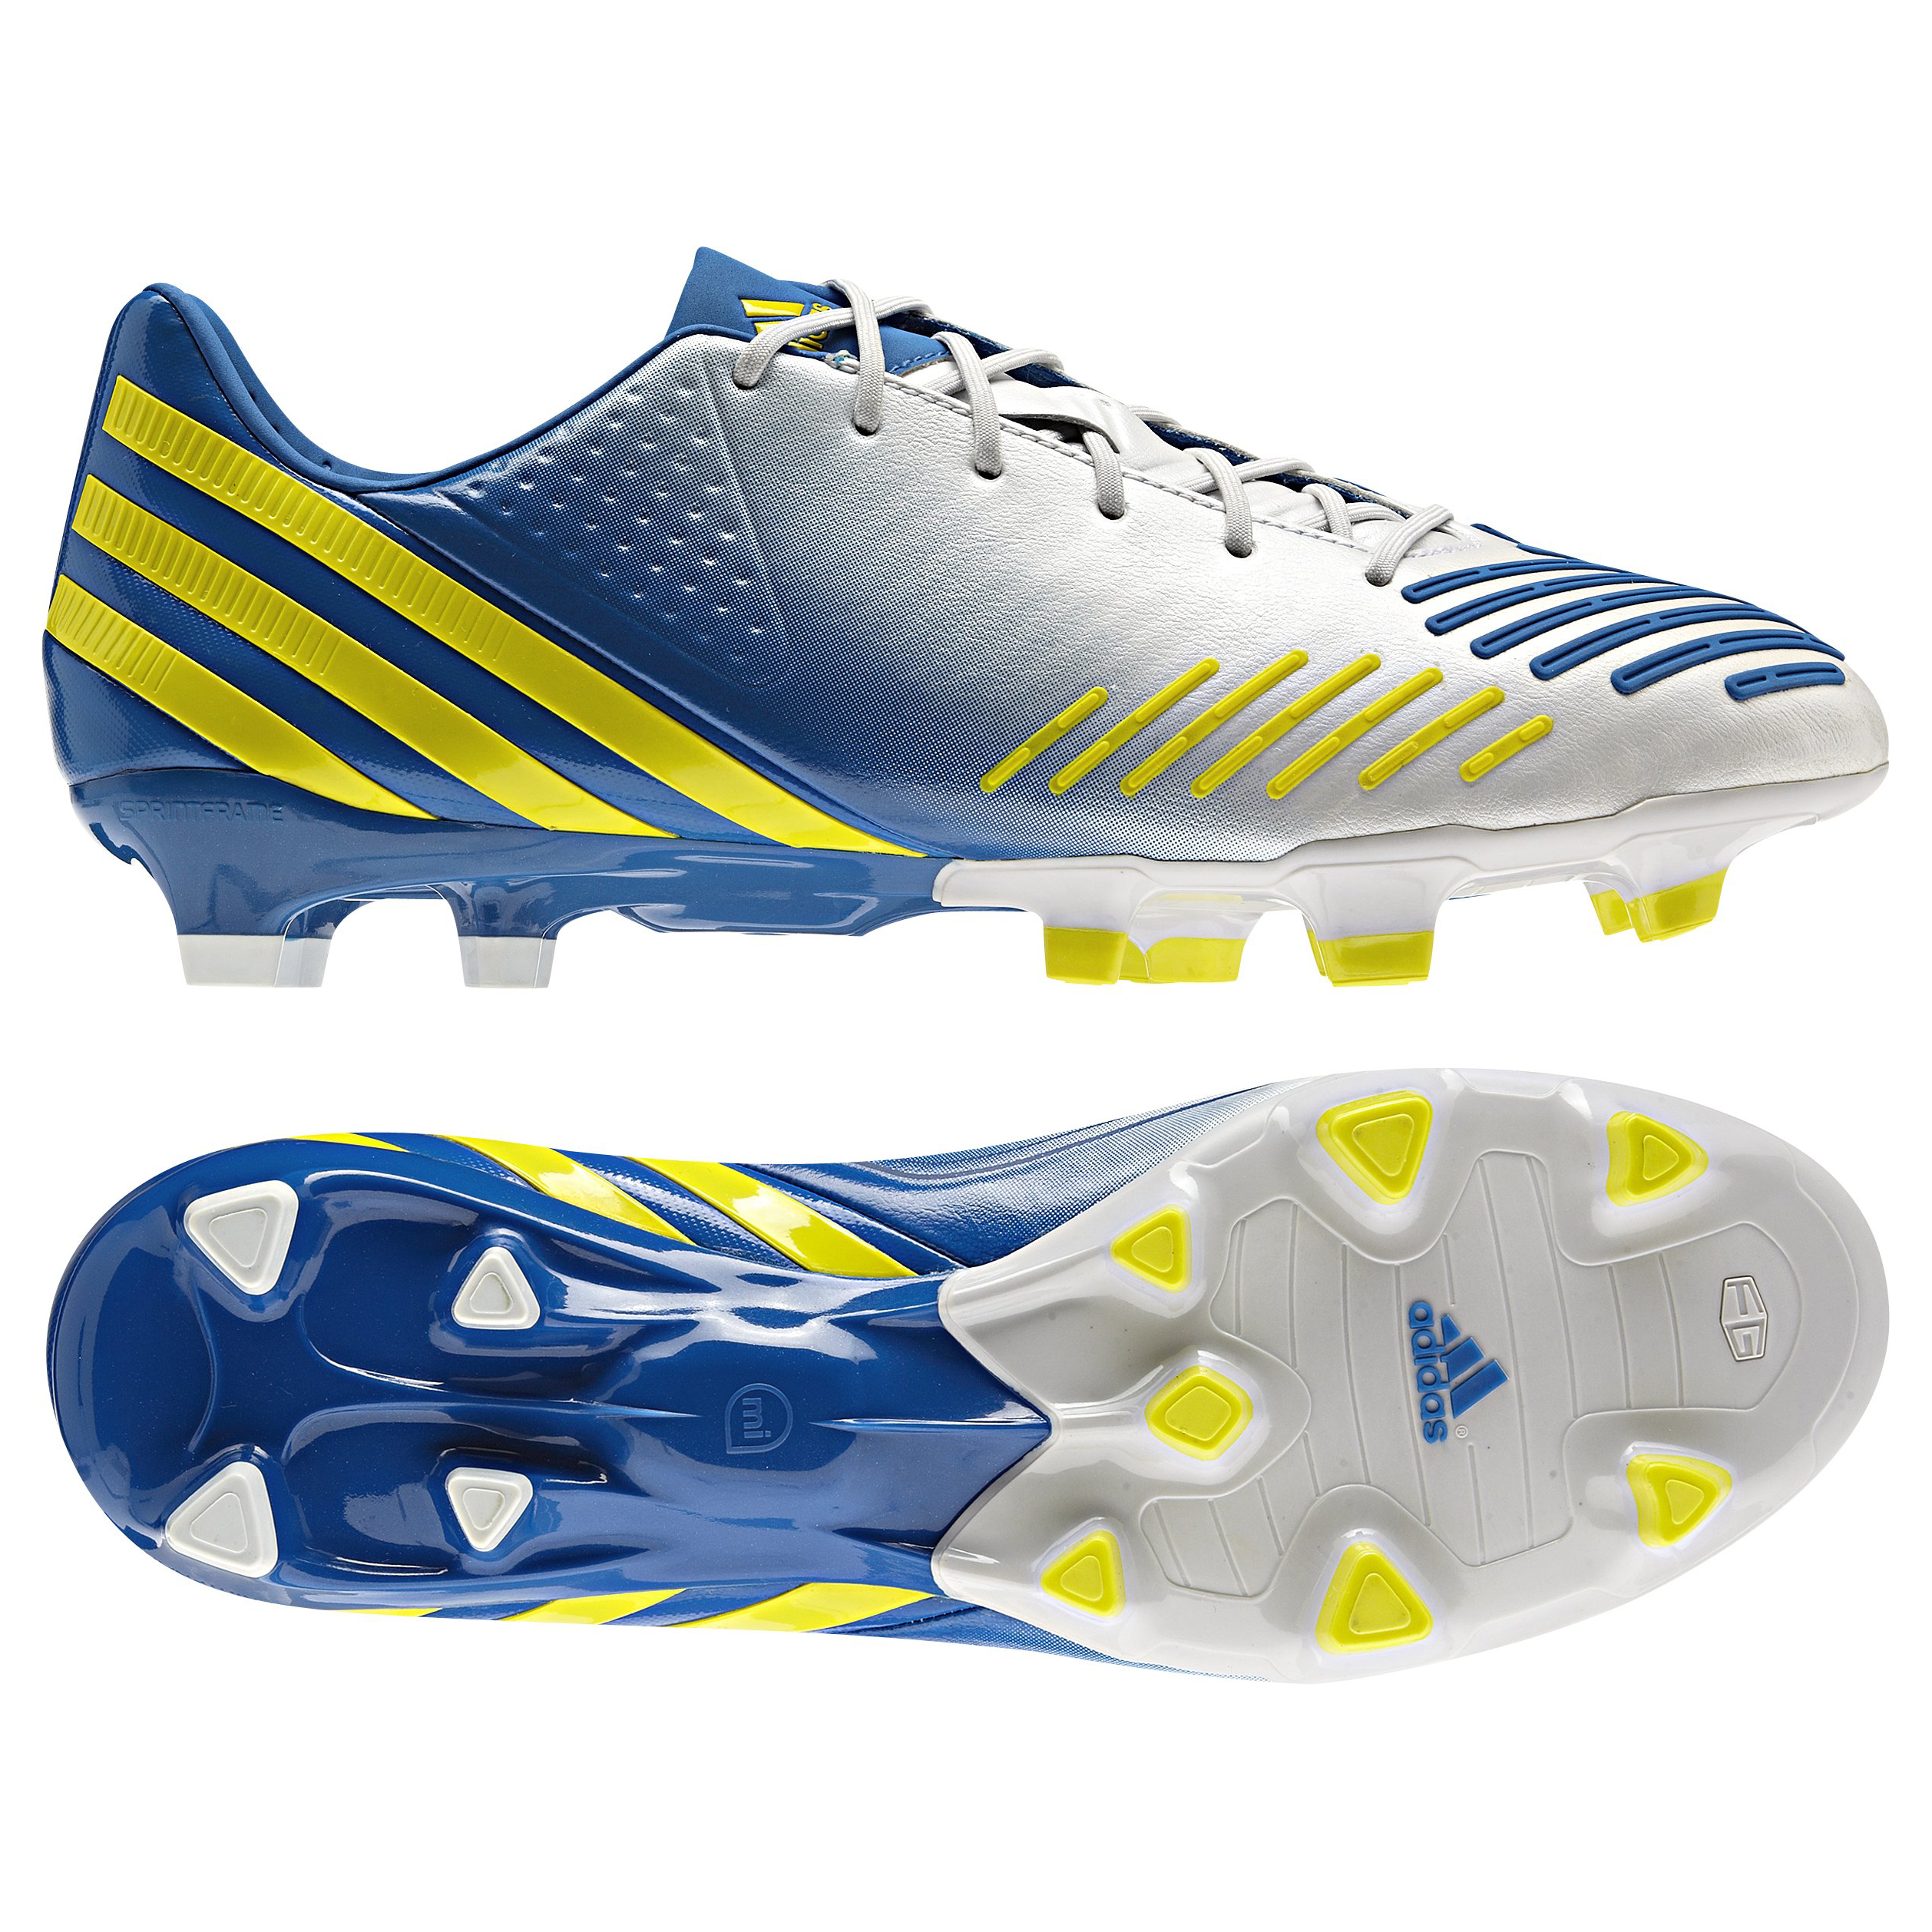 Adidas Predator LZ TRX Firm Ground Football Boots - White/Vivid Yellow/Prime Blue